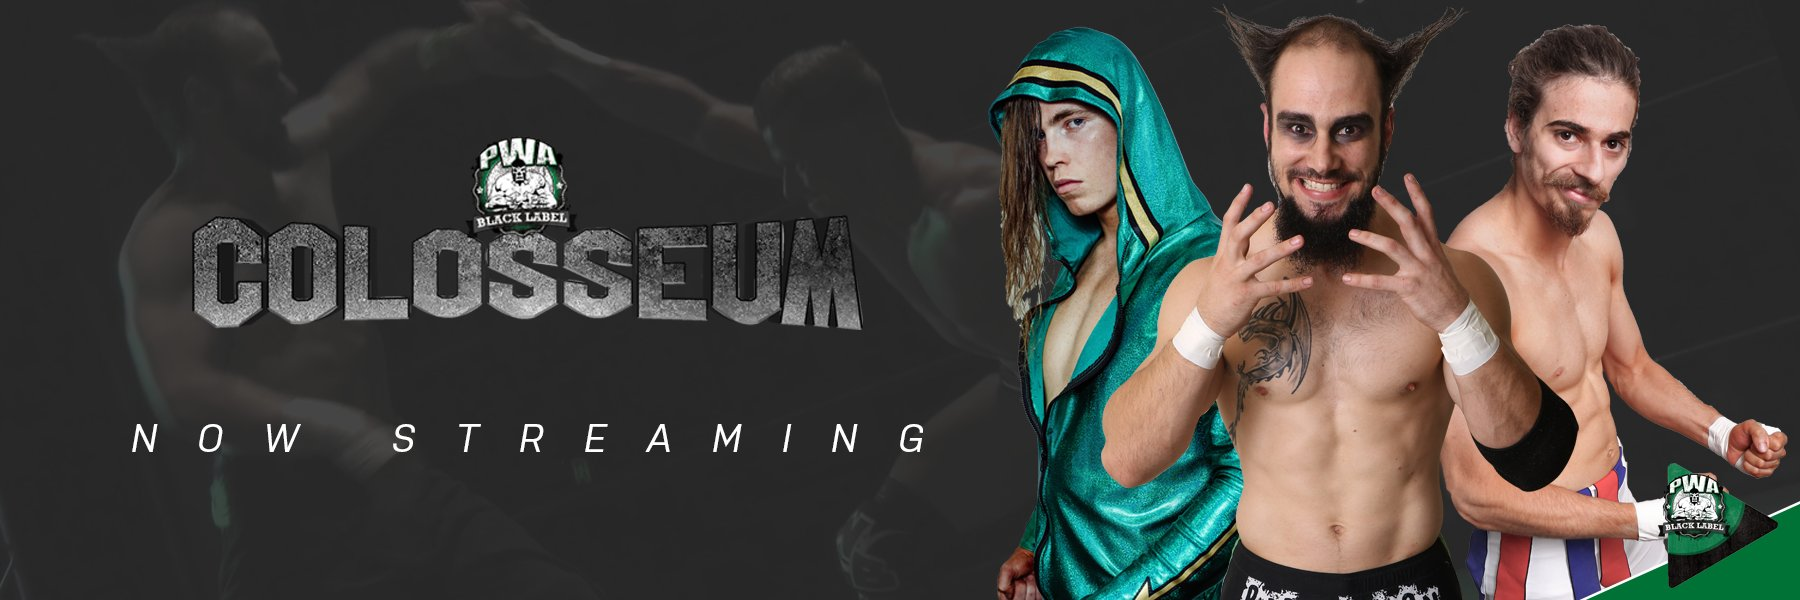 #PWACOLOSSEUM - STREAMING NOW